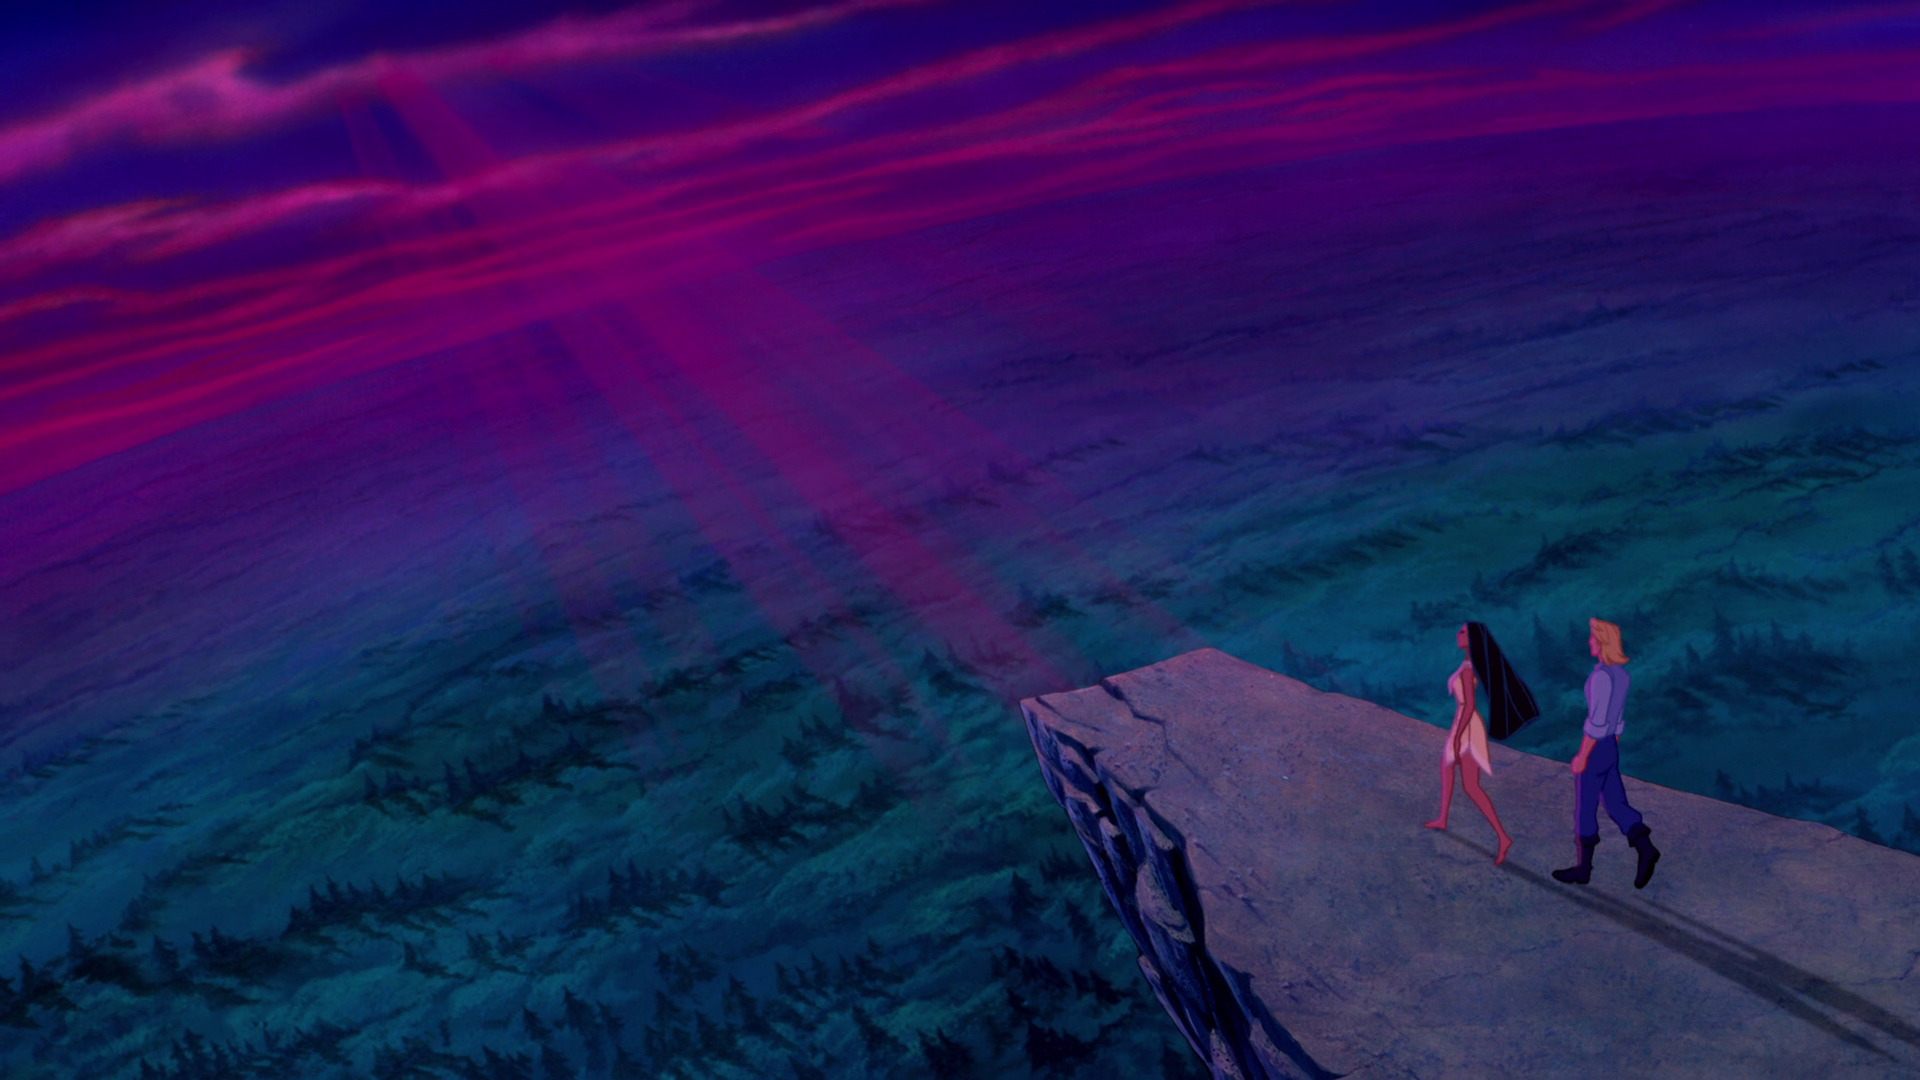 Epic Movie Hd Wallpapers 11 Hd Pocahontas Wallpapers